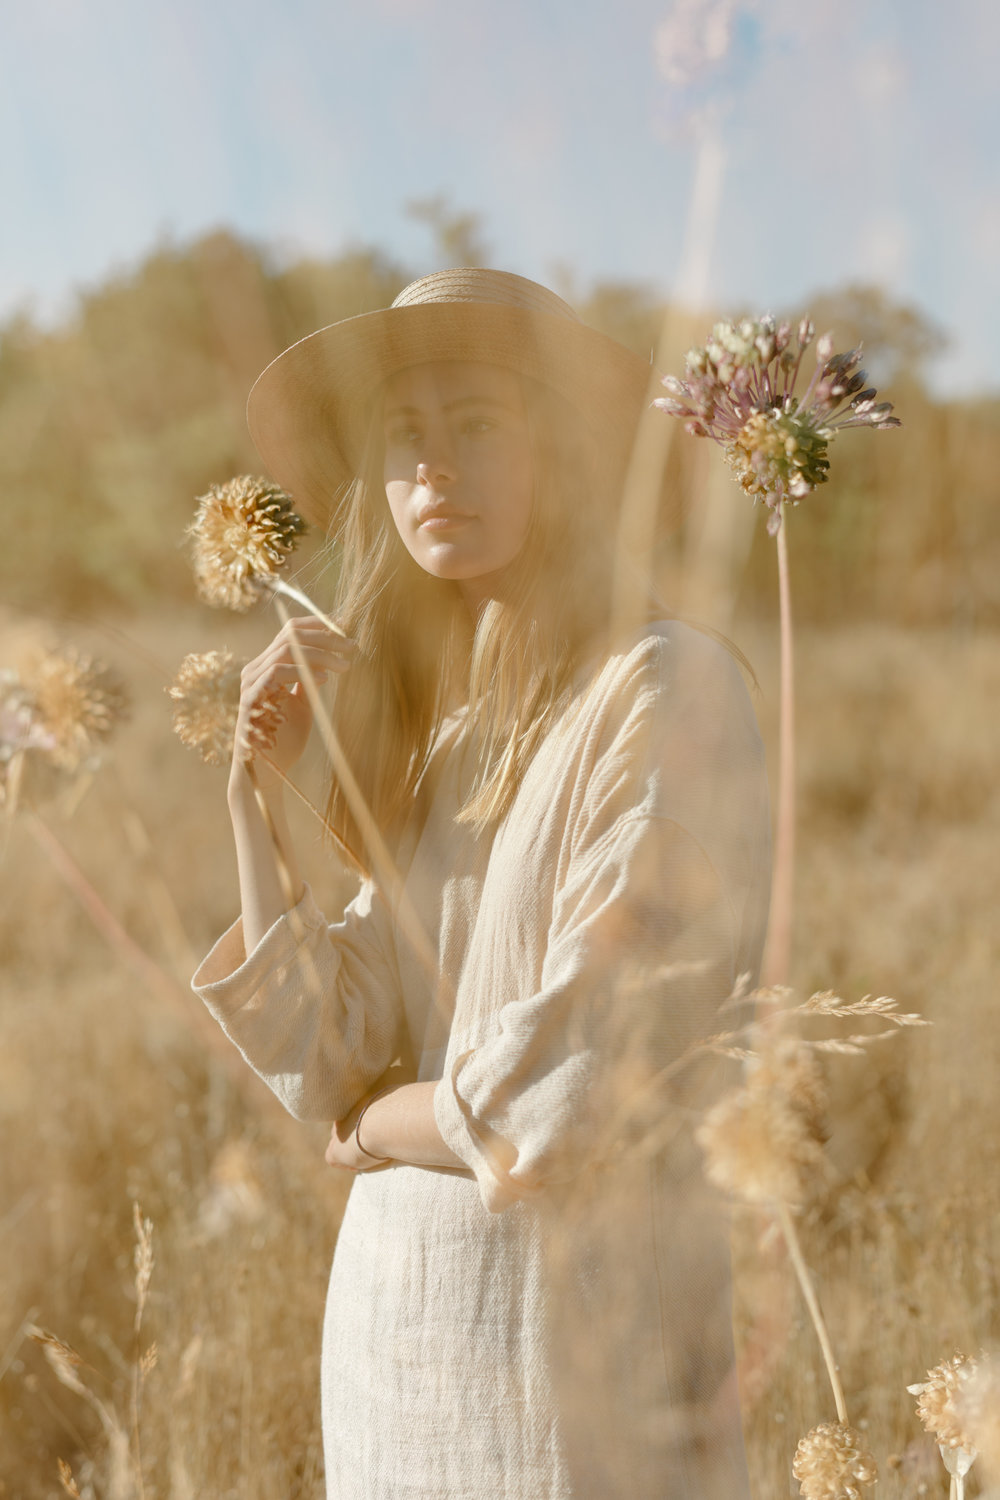 girl in a grass field double exposure, fashion photography, handwoven clothing woven wares victoria bc